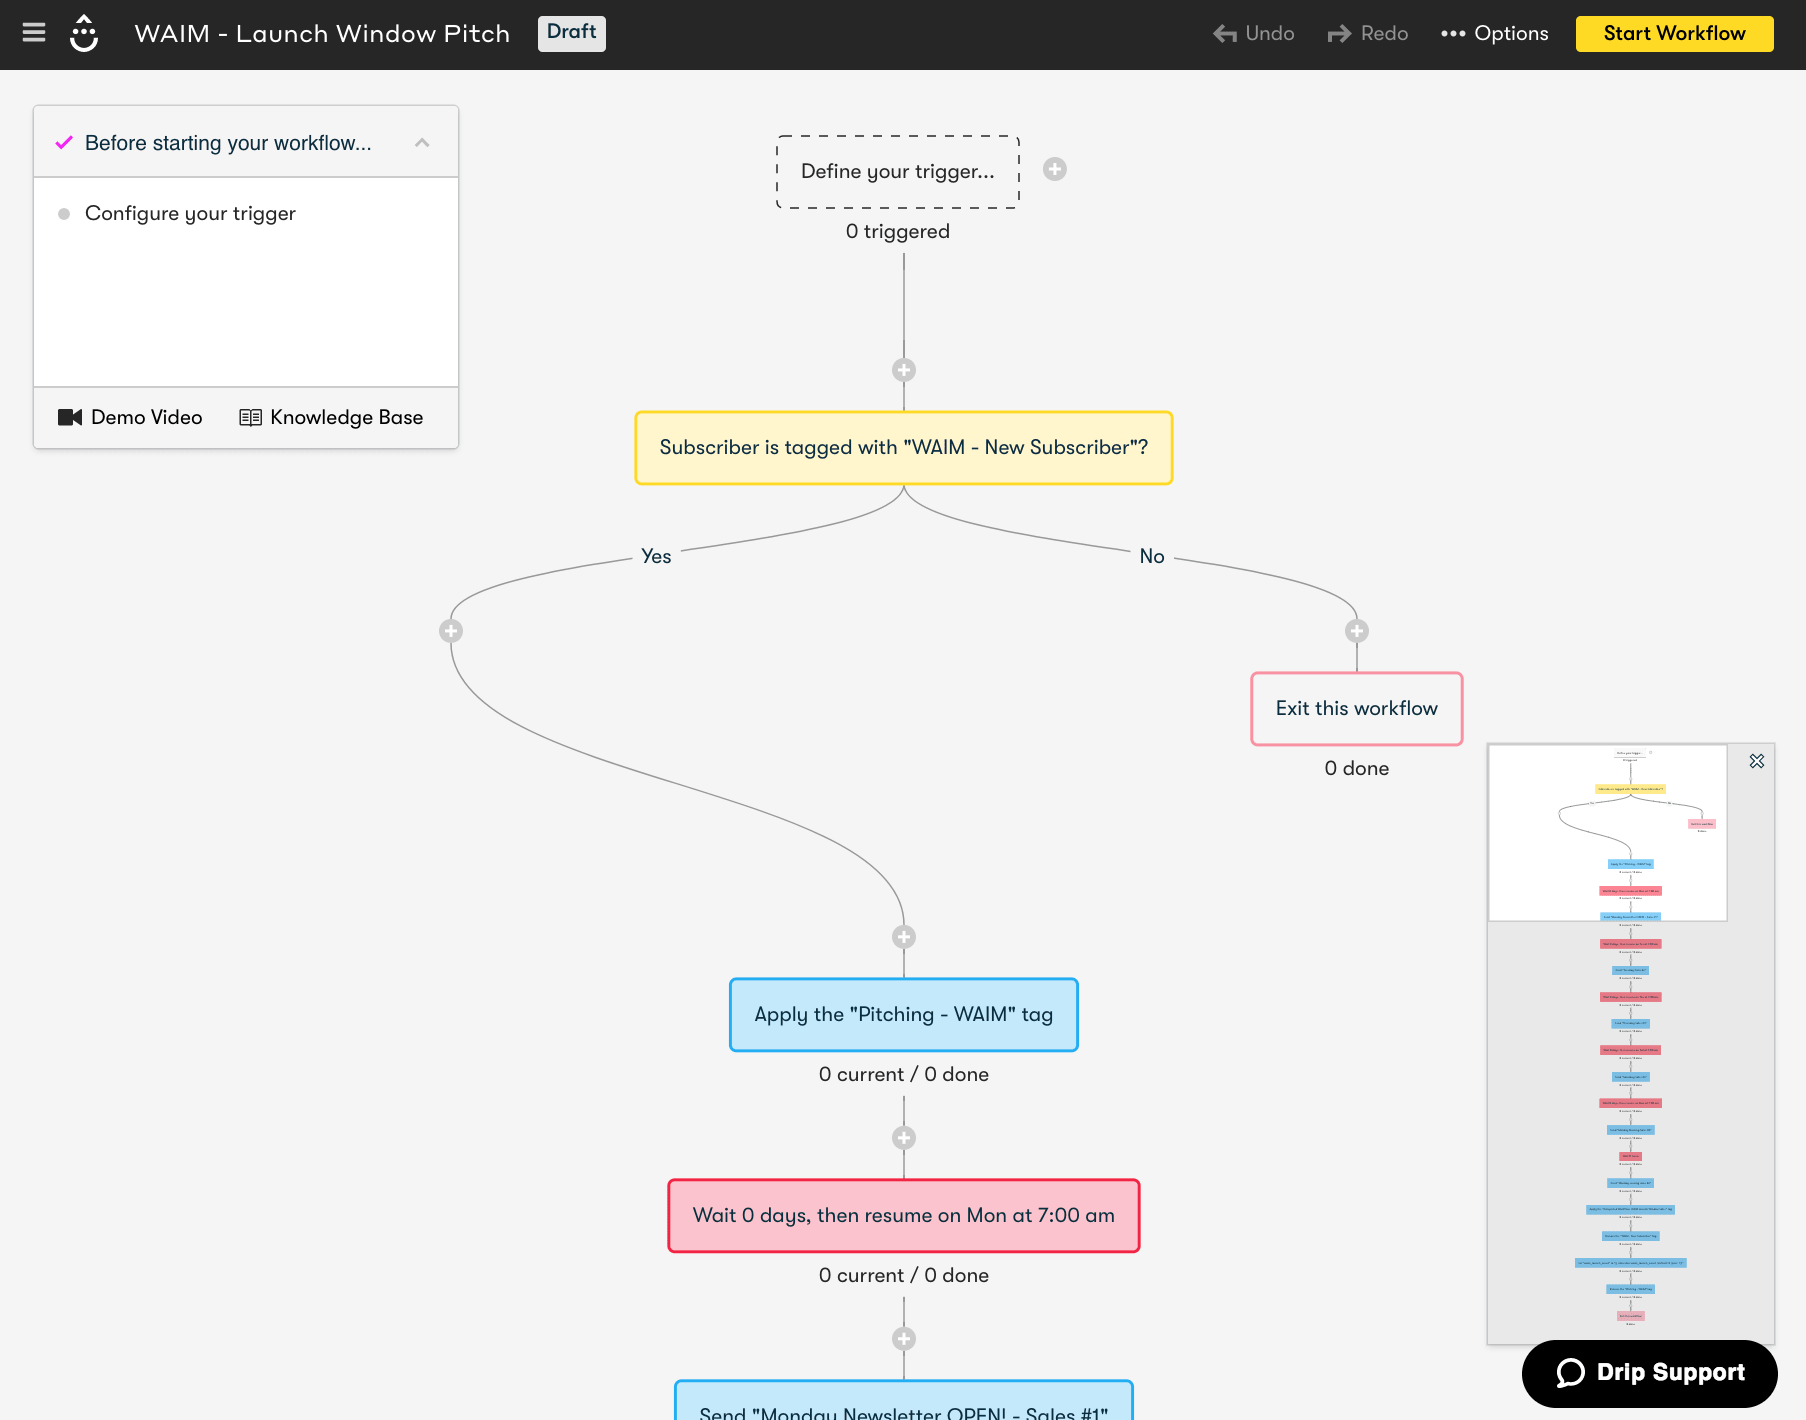 A snapshot of one of the many automation workflows we'll be creating